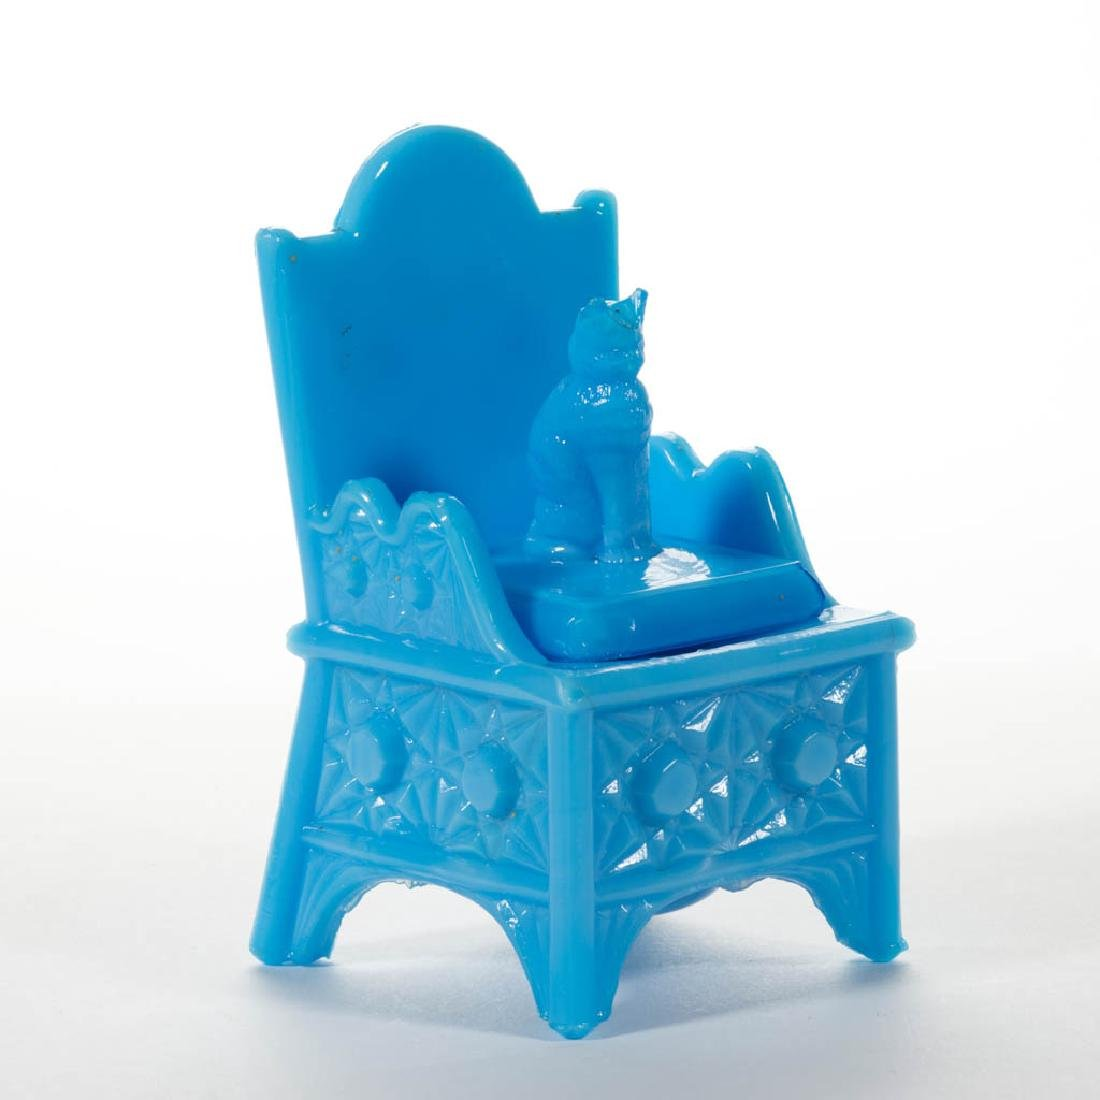 CAT ON CHAIR NOVELTY INKWELL